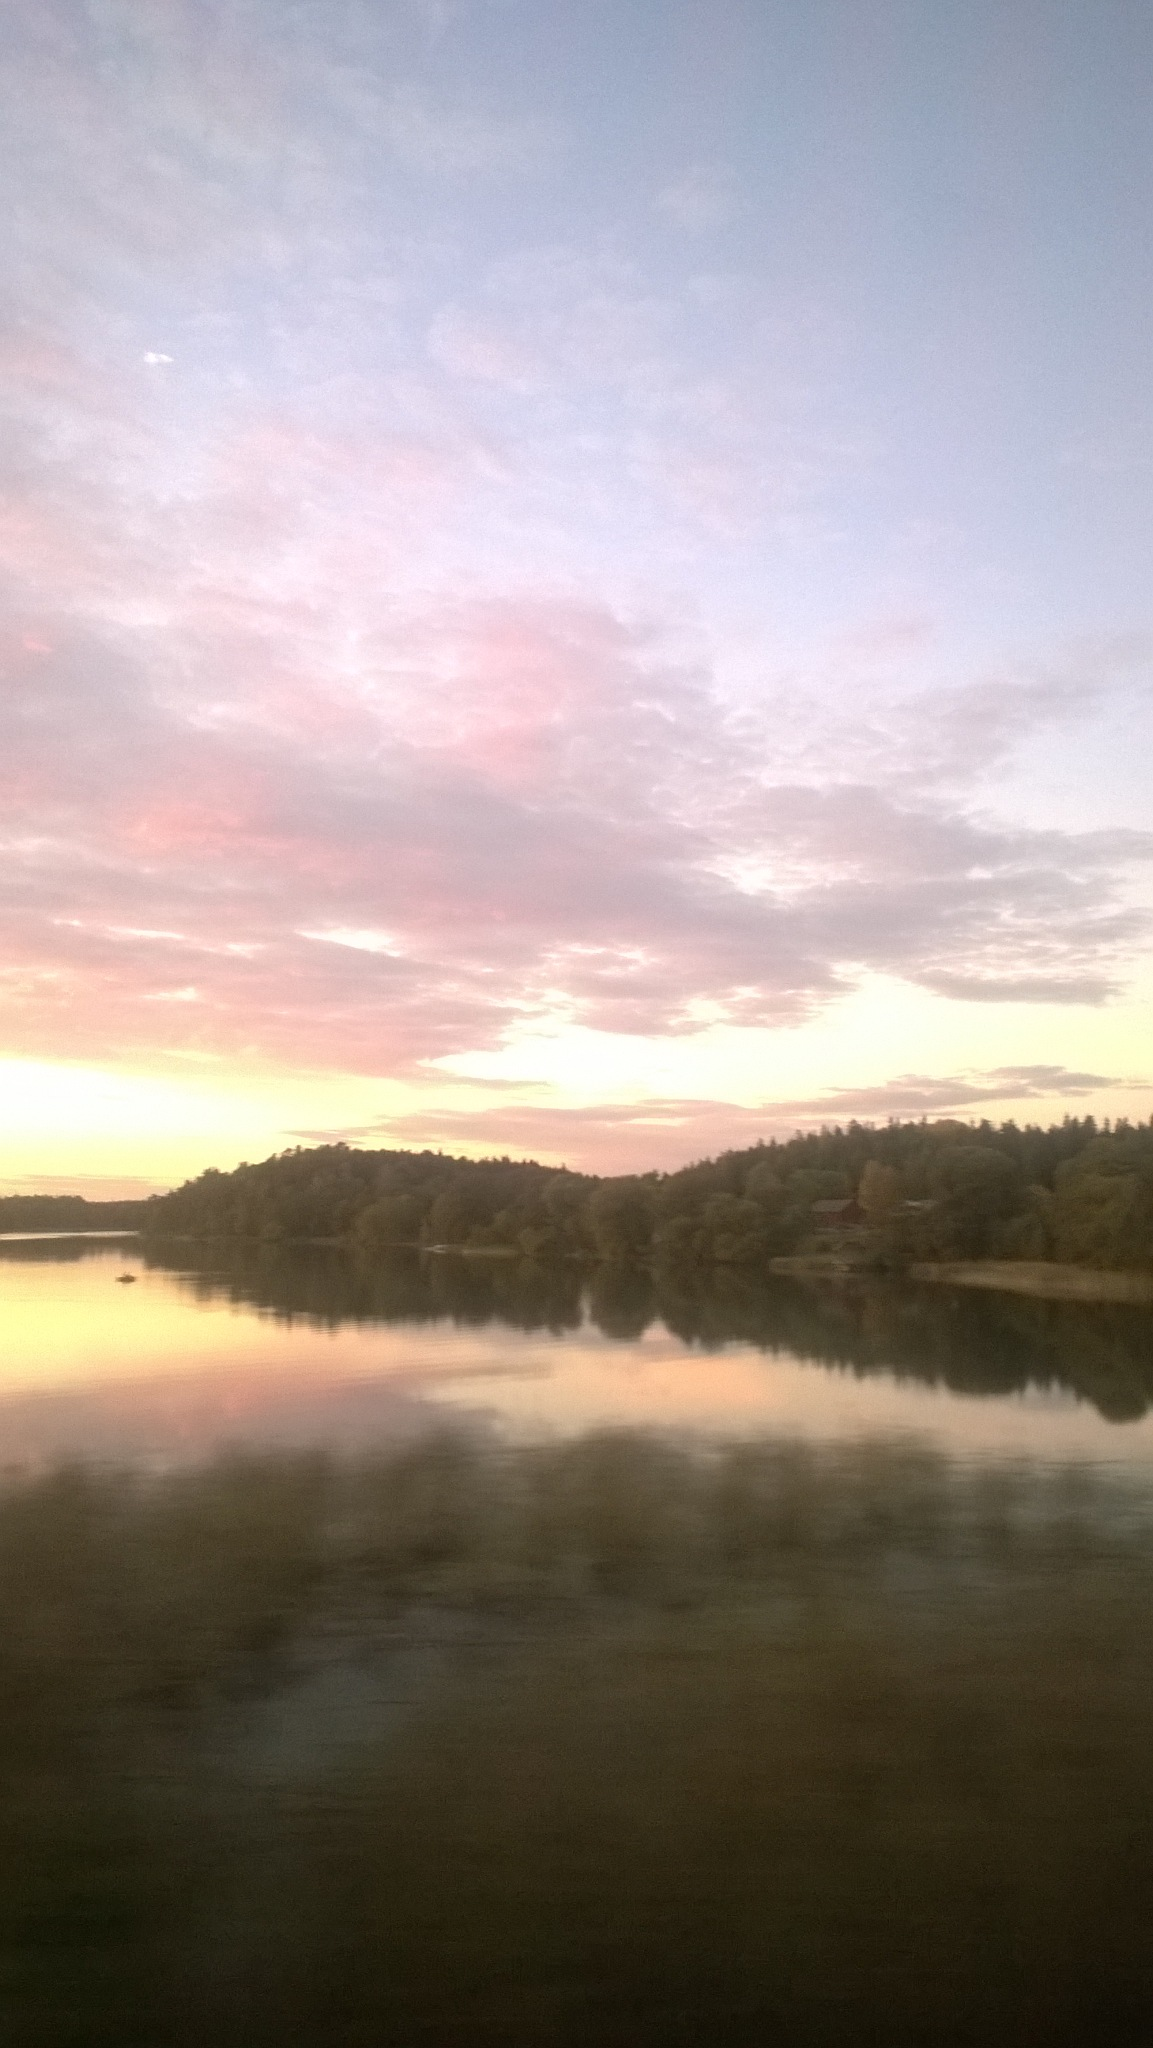 Swedish lake view from train by C@TY€$